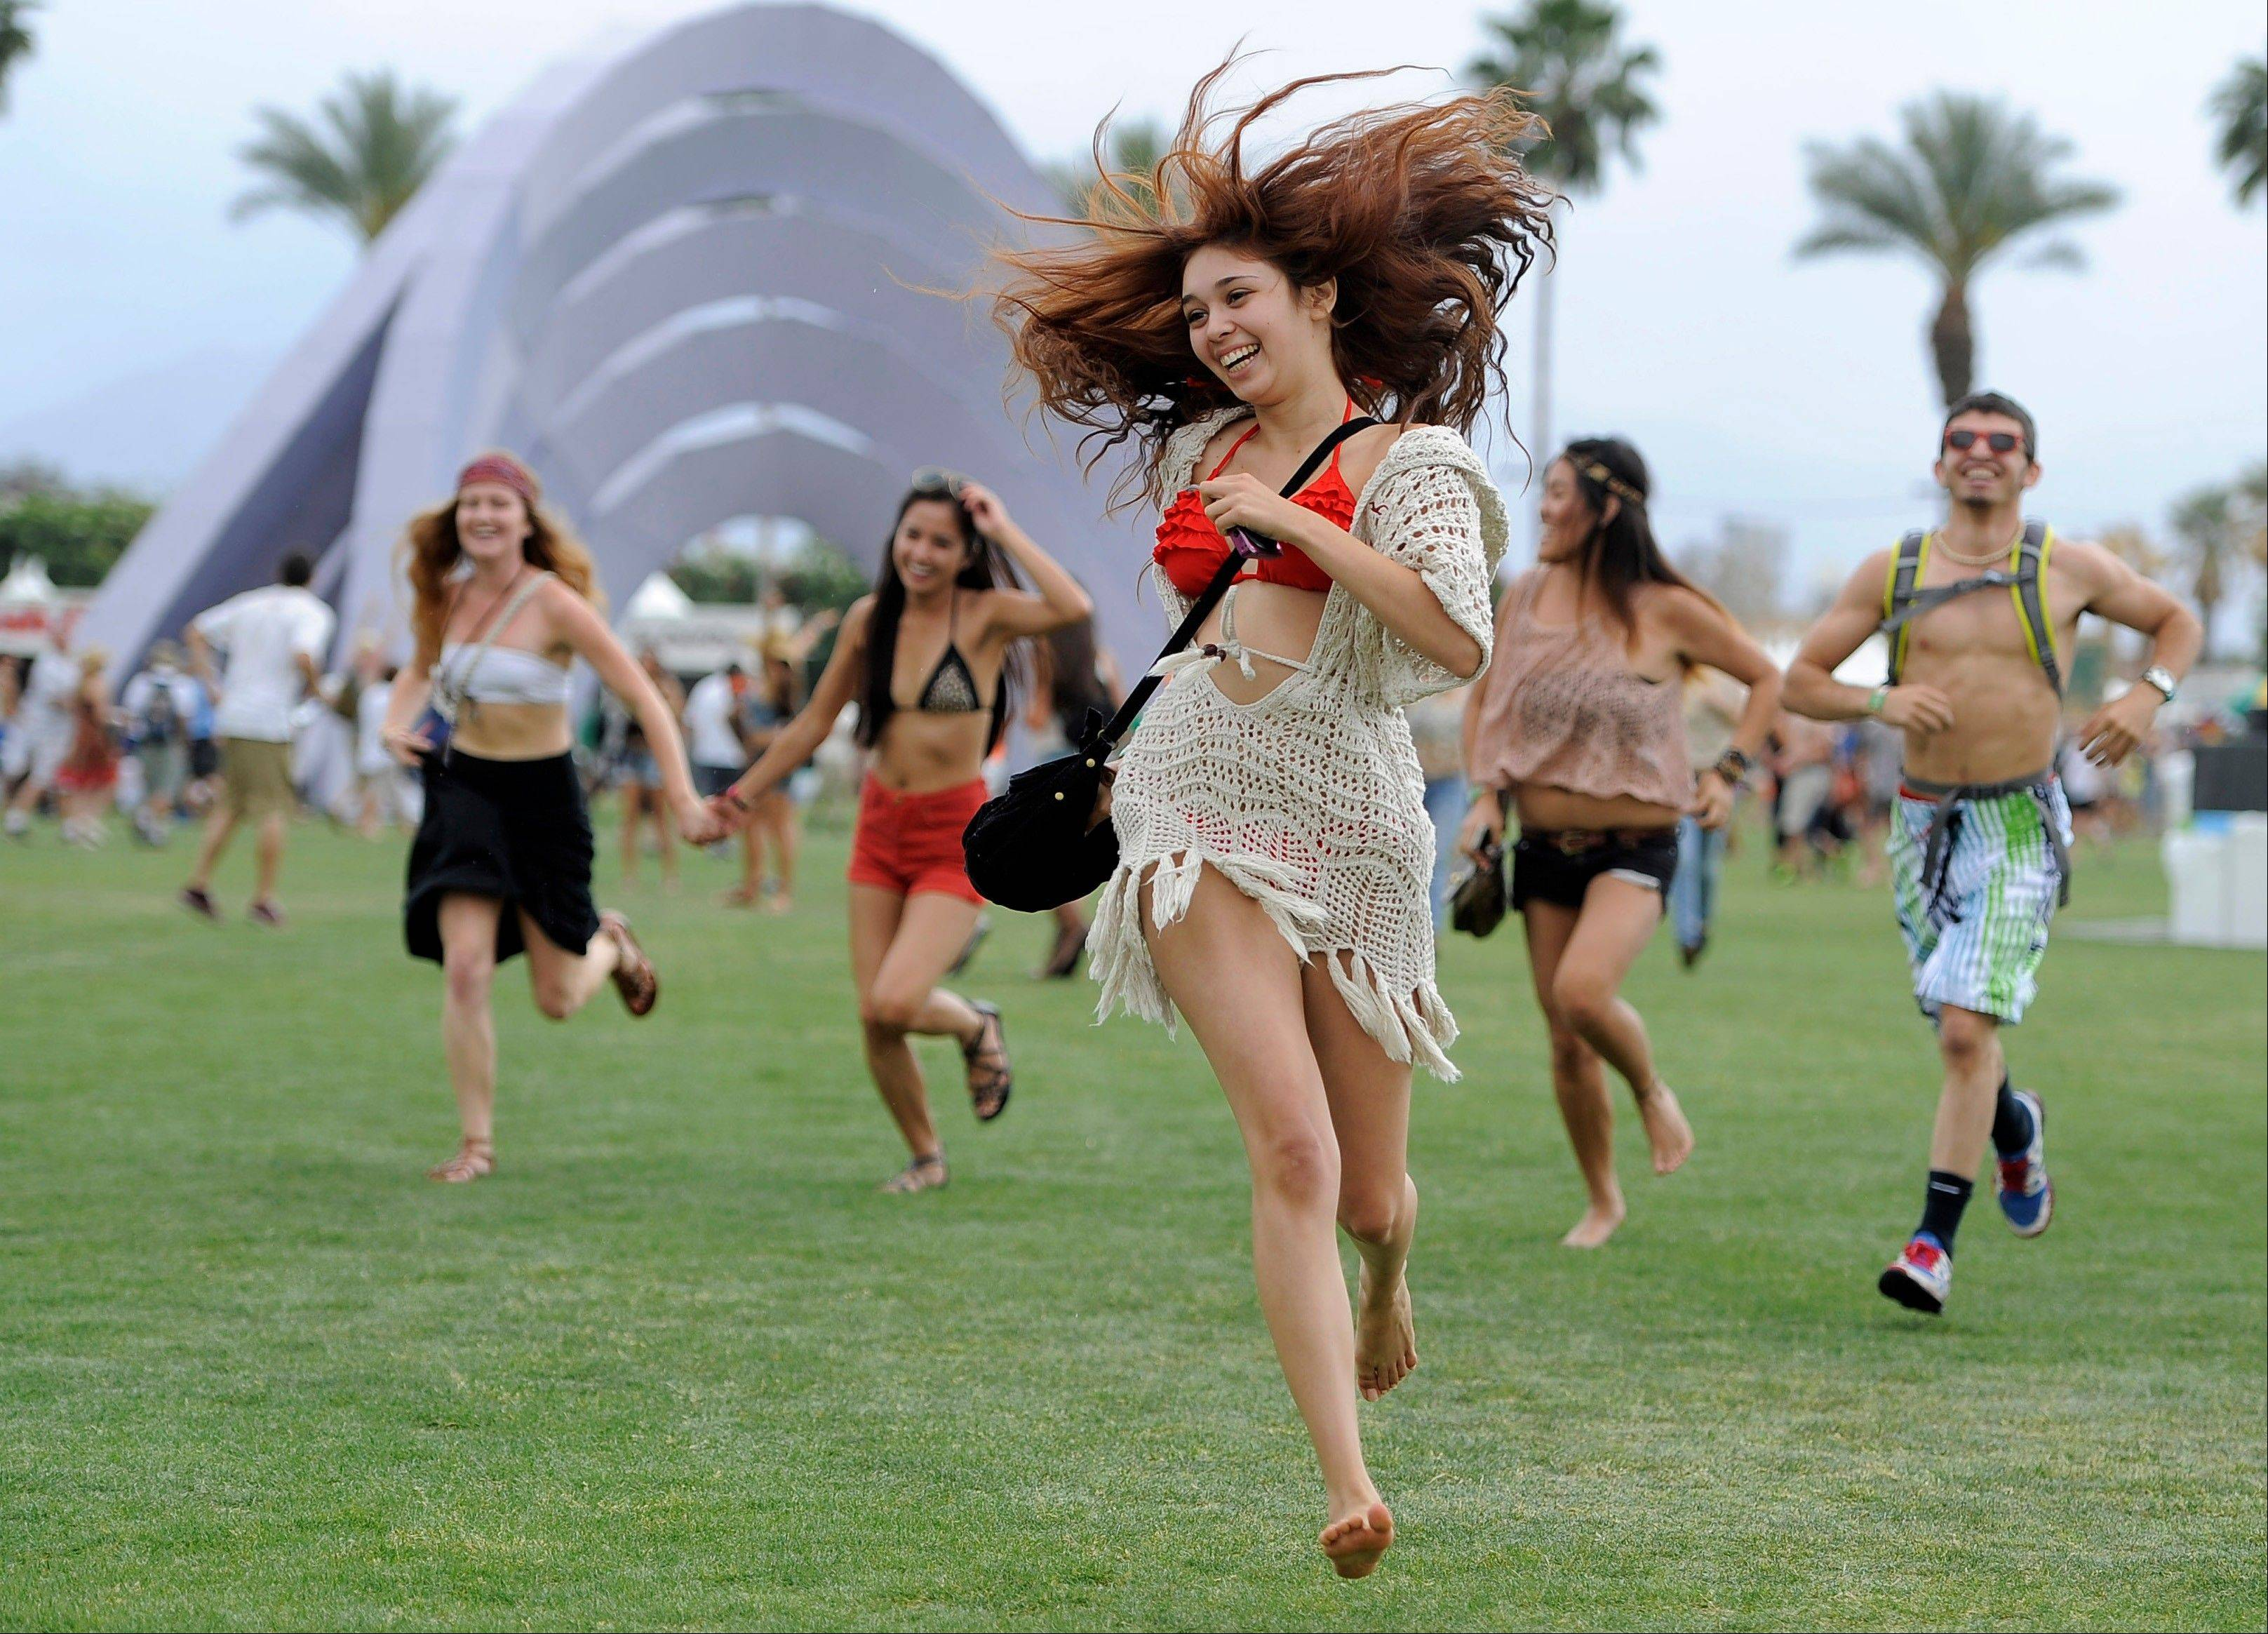 Festival goers run toward the main stage to catch the beginning of Kendrick Lamar's set during the first weekend of the 2012 Coachella Valley Music and Arts Festival in Indio, Calif.